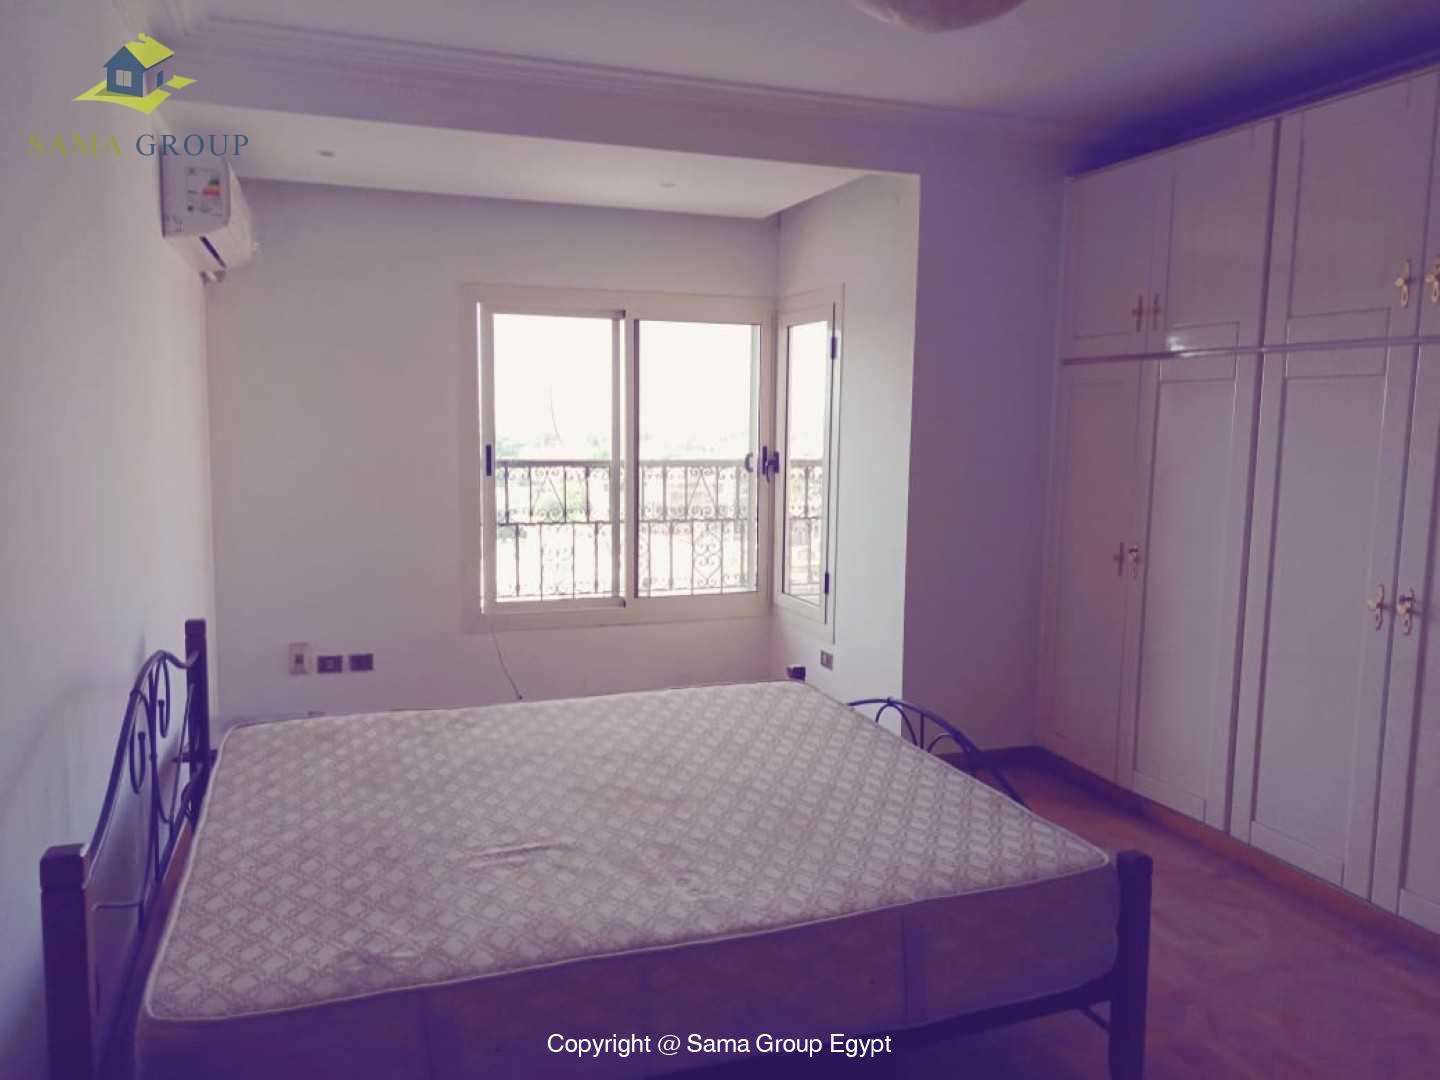 Penthouse With Pool For Rent In Maadi Degla,Semi furnished,Penthouse NO #10